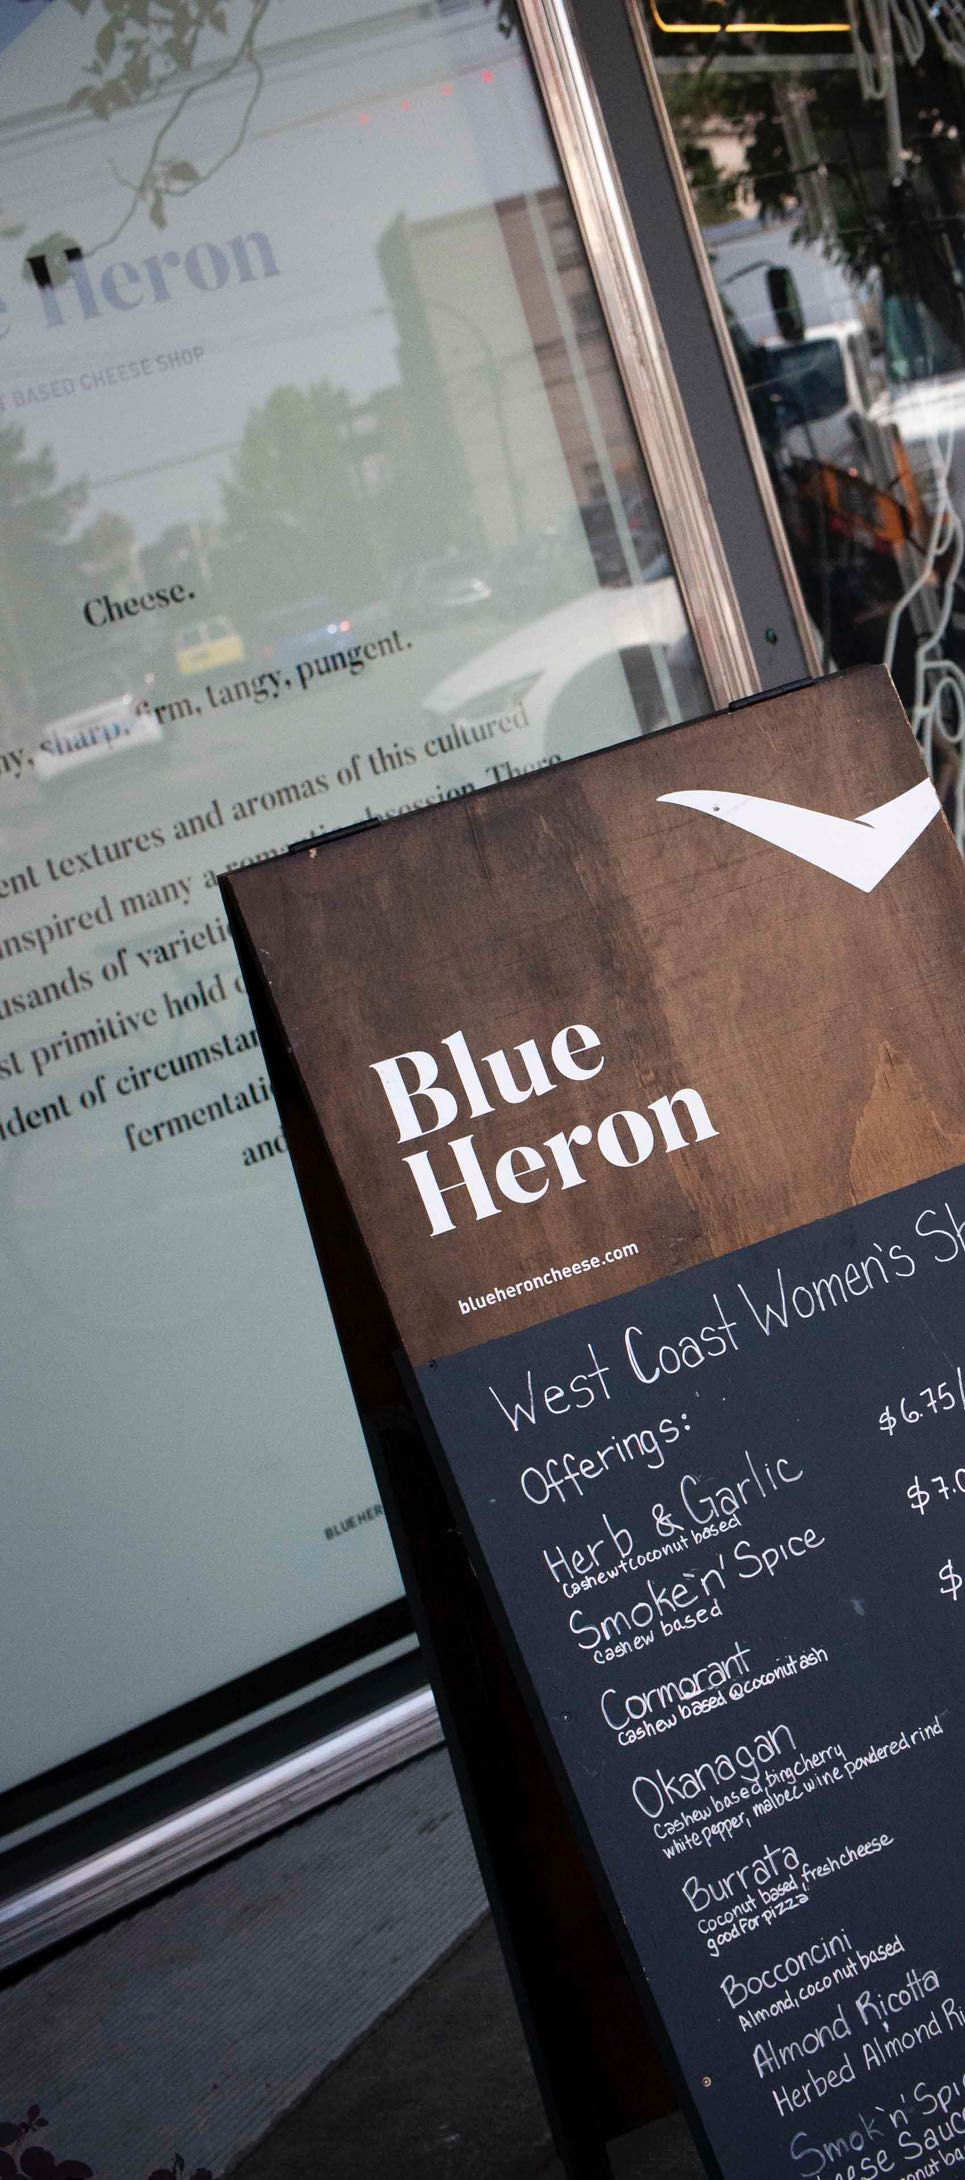 Blue Heron Cheese Billboard storefont window with hand painted brand manifesto and branded wooden sandwich board — by Dima Yagnyuk.